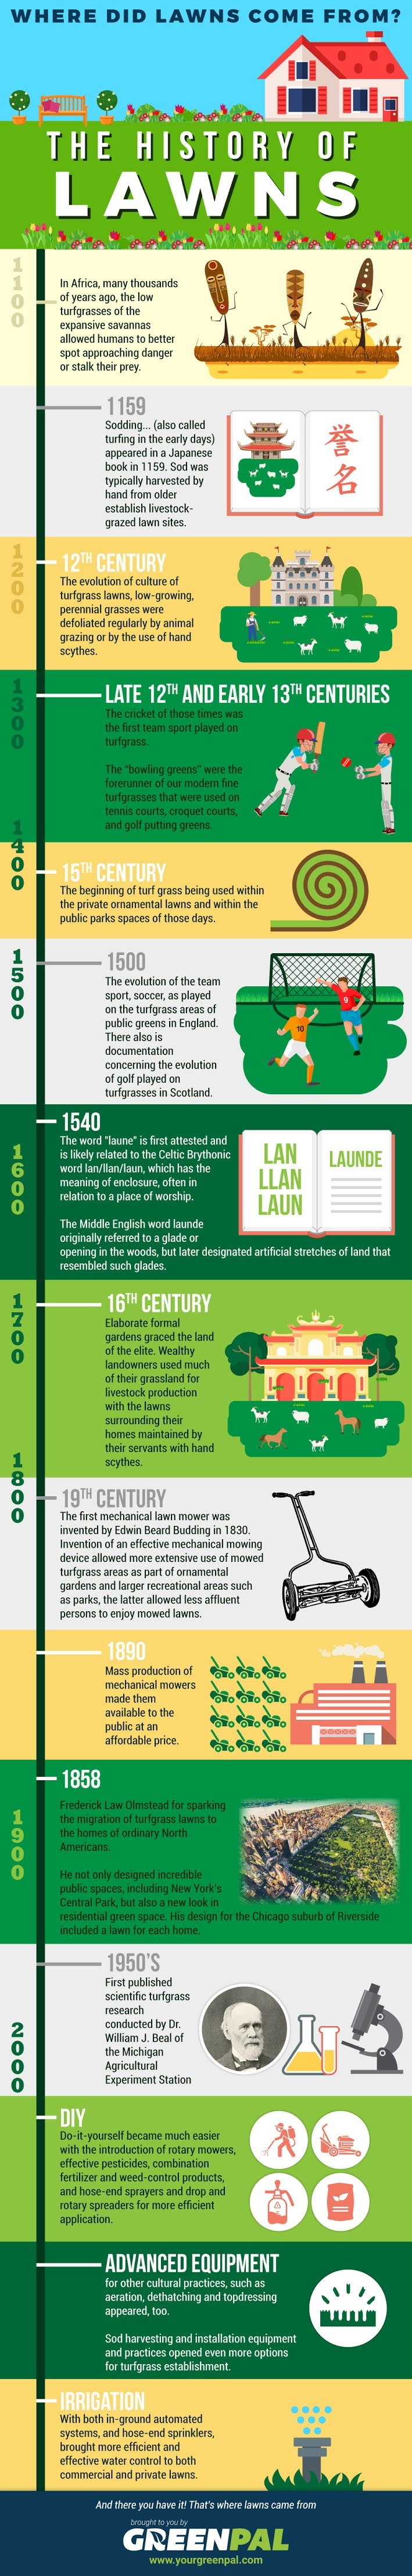 The History of Lawns #infographic